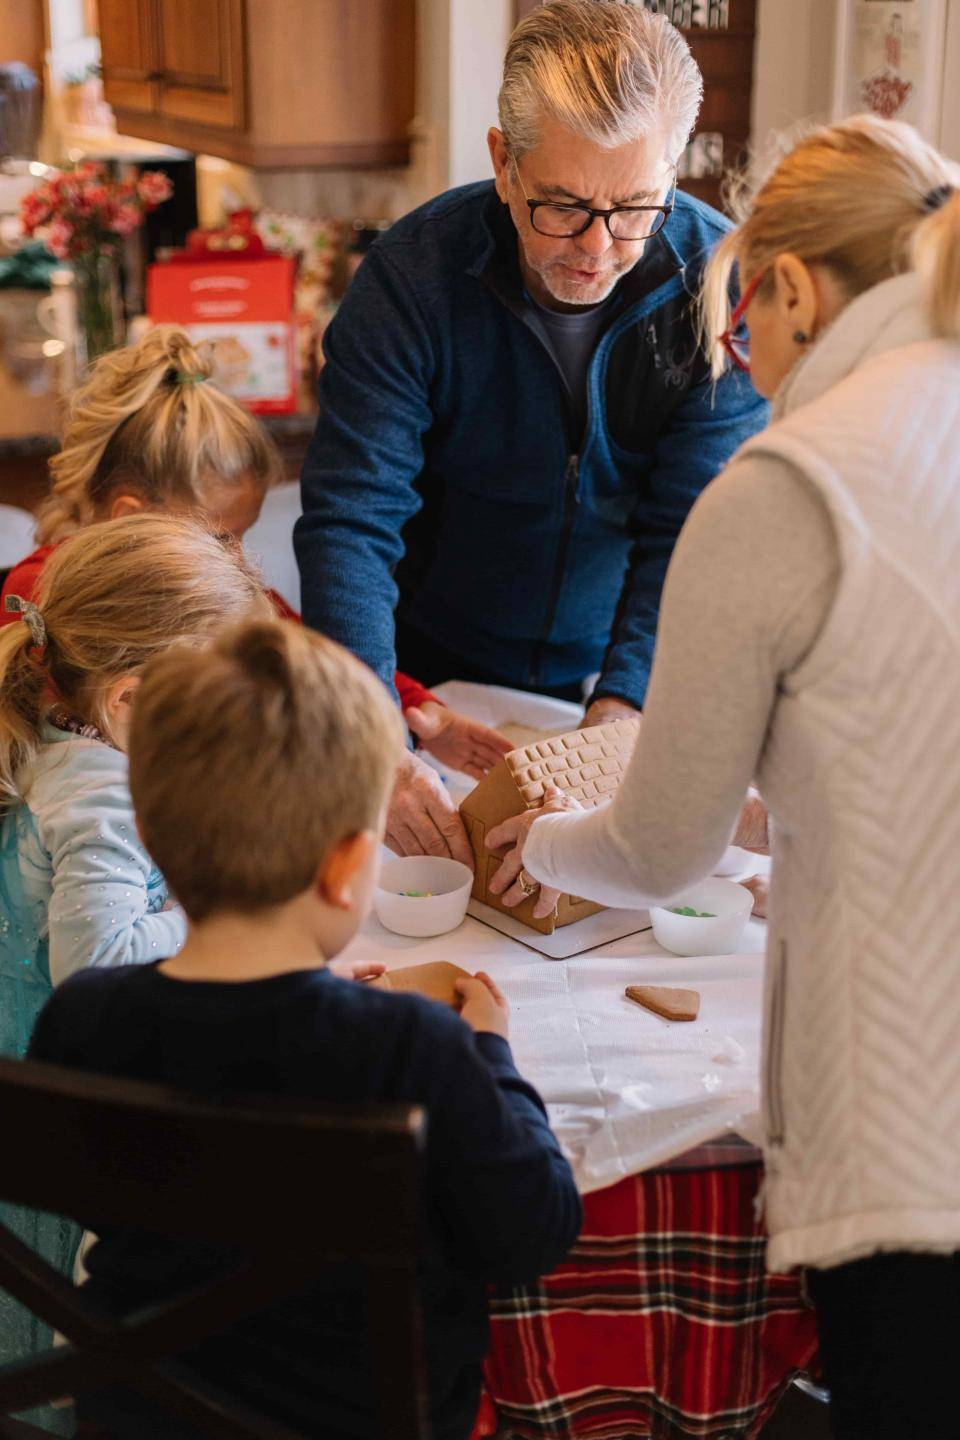 Grandparents creating gingerbread house with grandchildren. Photo by Phillip Goldsberry on Unsplash.